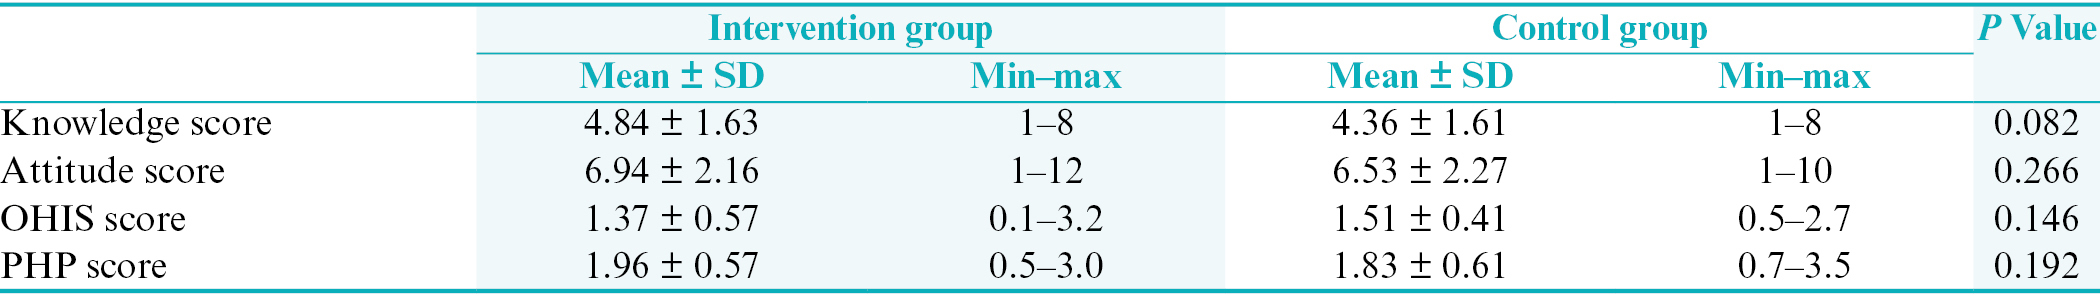 Table 1: Comparison of knowledge, attitude, oral hygiene index simplified, and patient hygiene performance scores between intervention and control groups before the intervention